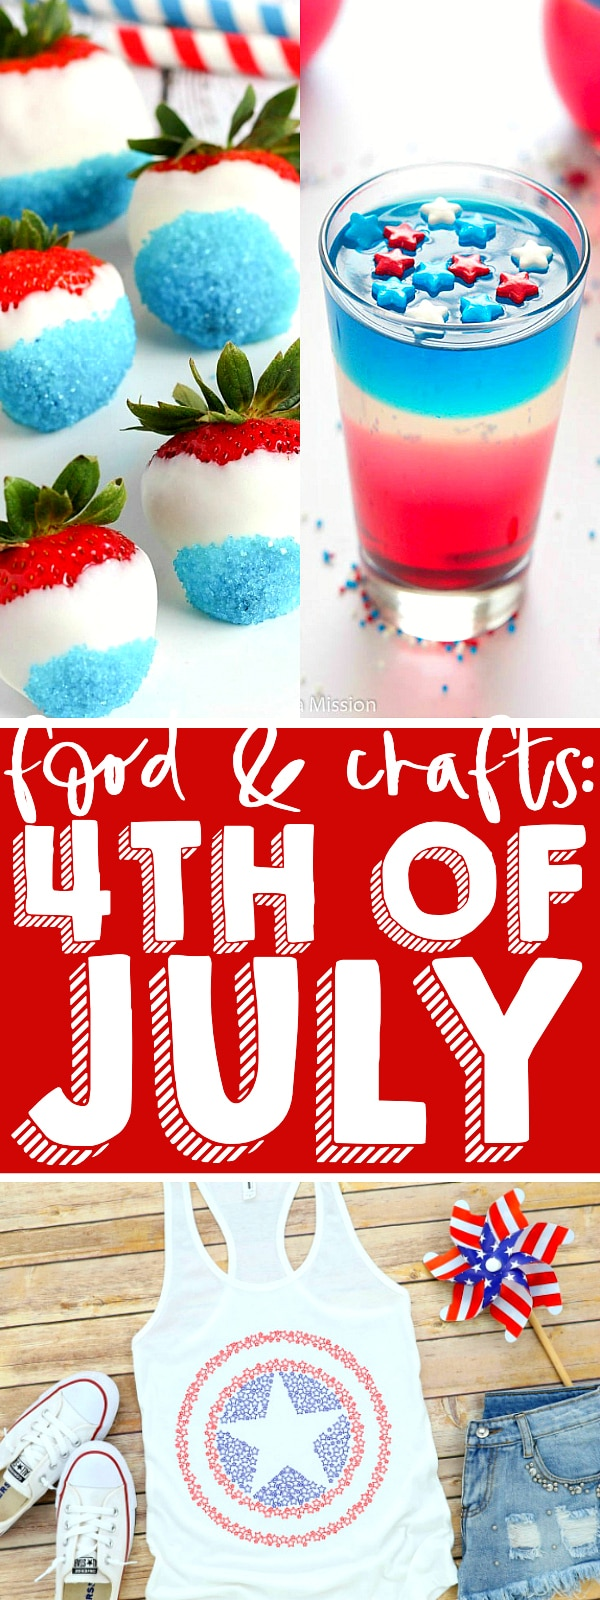 Over 50 4th of July ideas to make your perfect holiday celebration! Ideas for 4th of July recipes - side dishes, main meal, desserts and drinks - as well as 4th of July crafts and party ideas! Everything you need in one place! | THE LOVE NERDS #fourthofjuly #redwhiteandblue #patrioticrecipes #patrioticcrafts